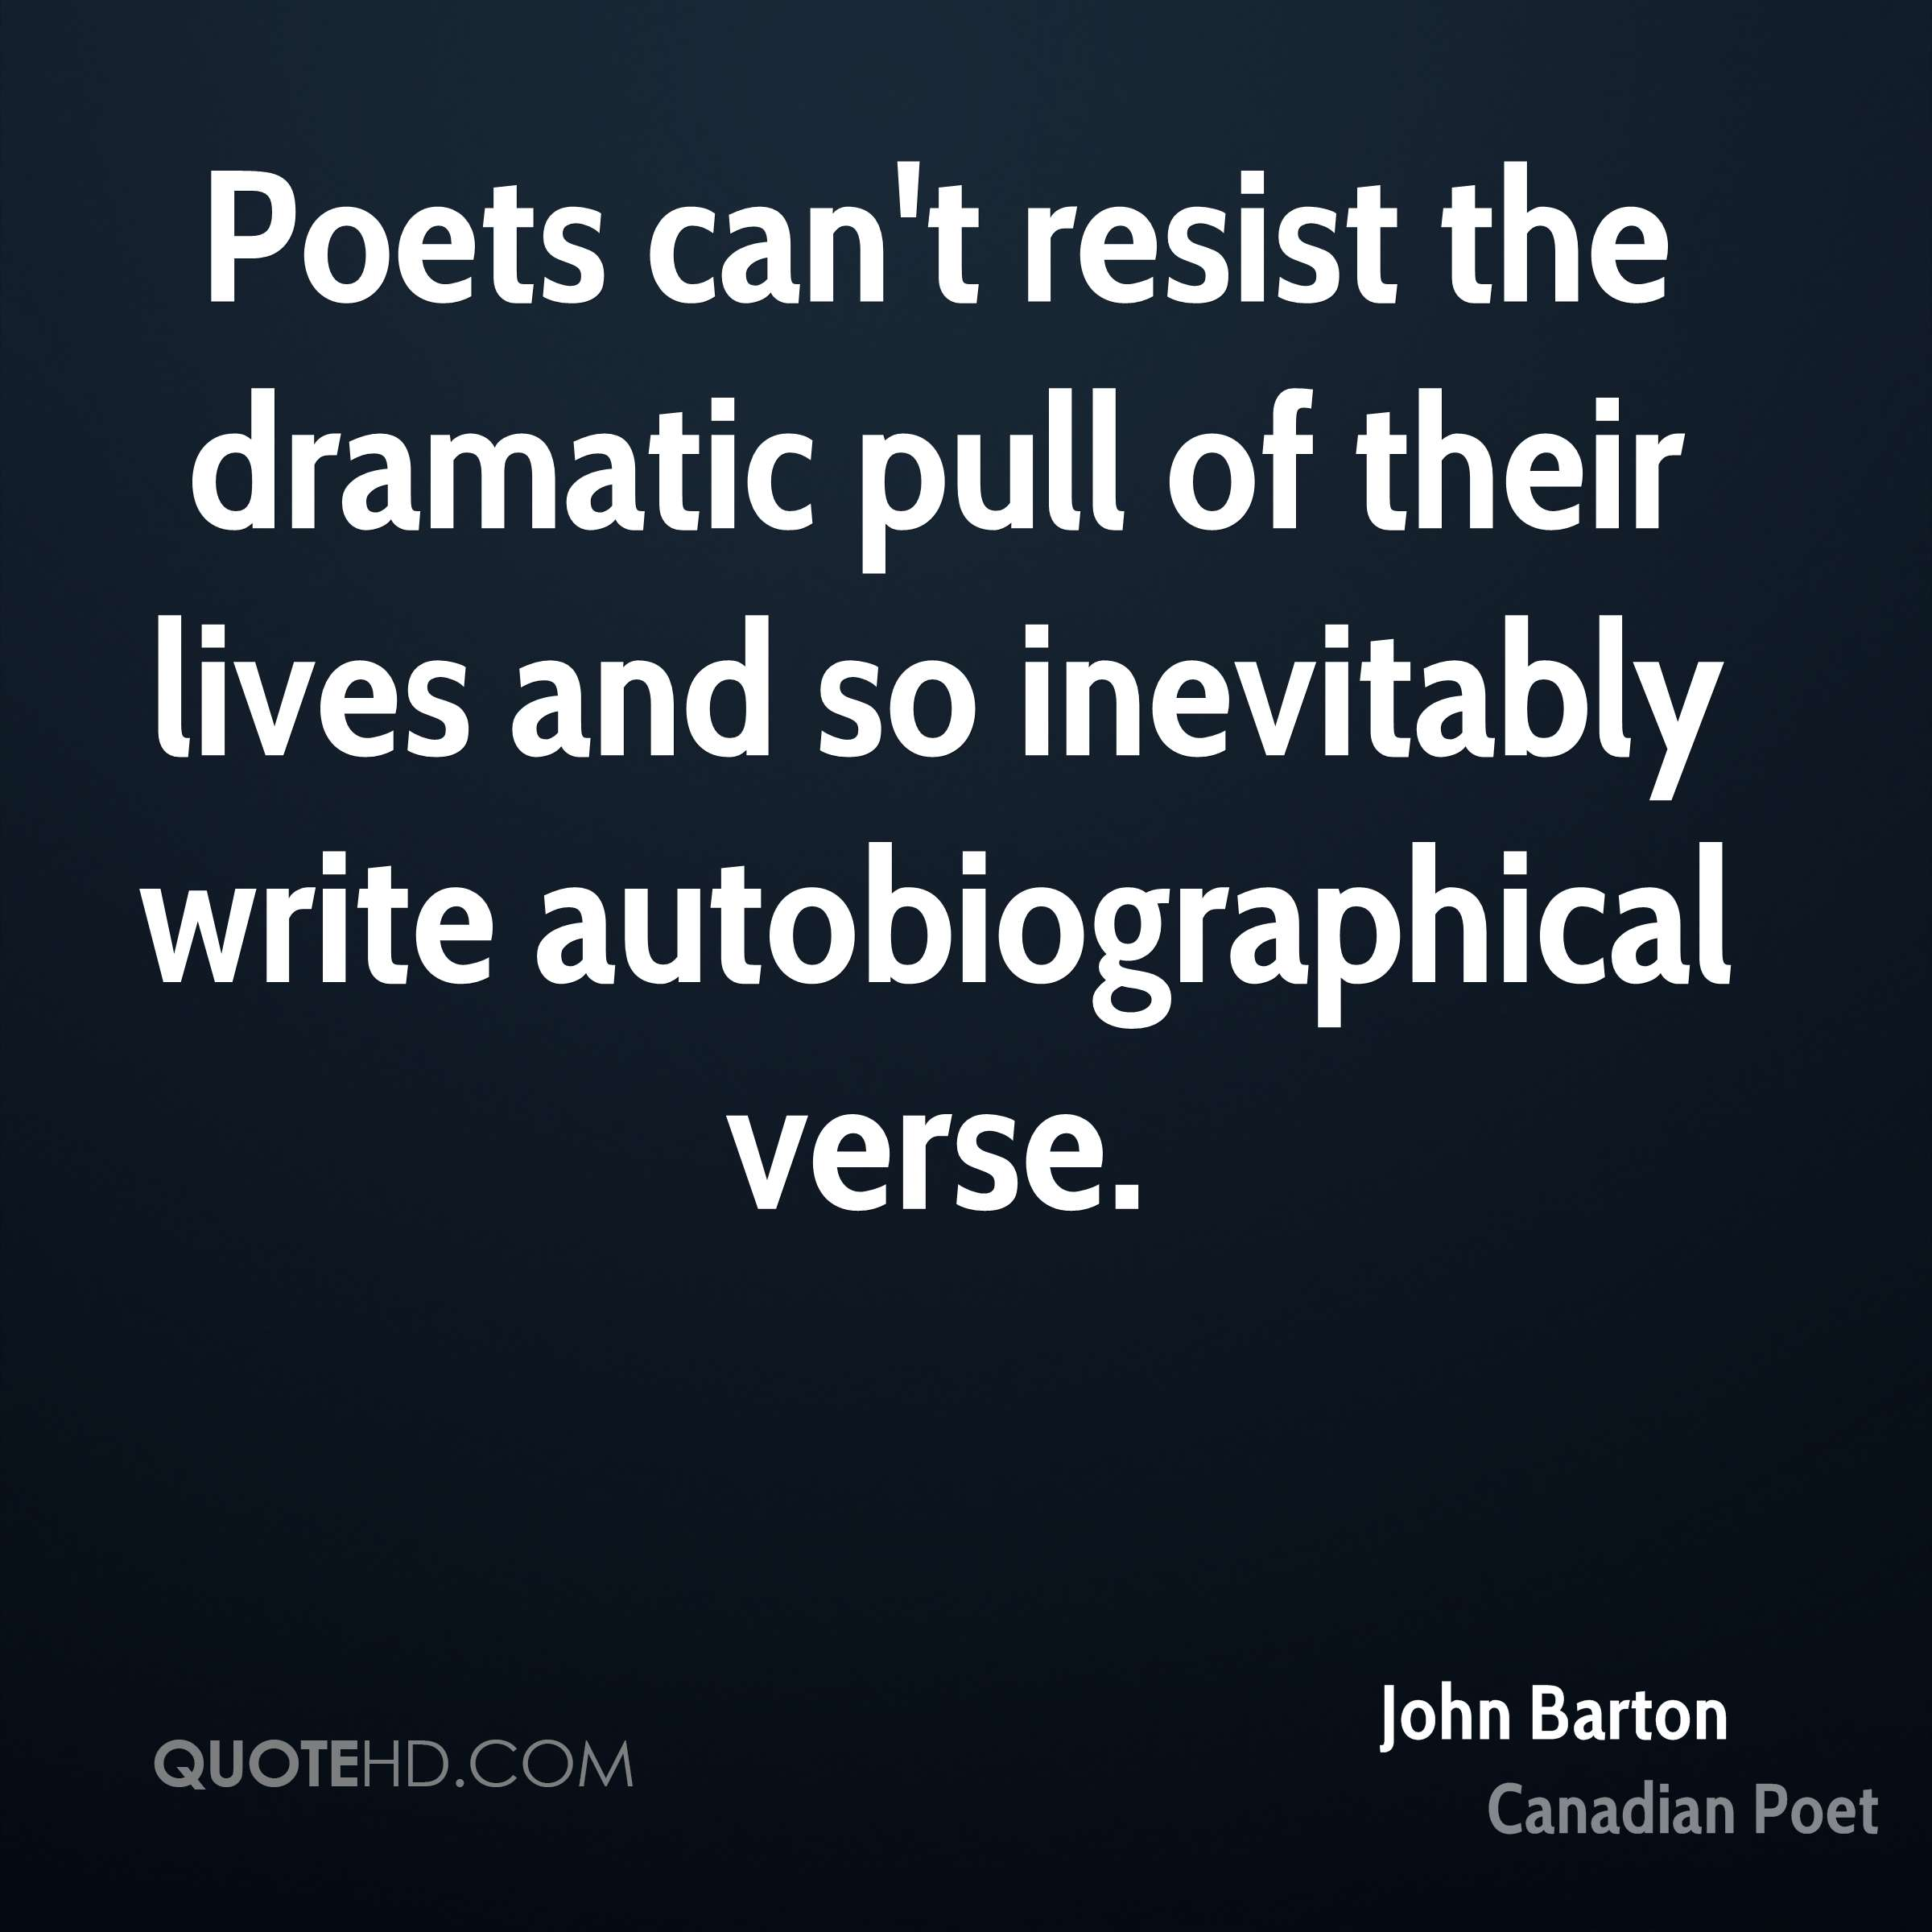 Poets can't resist the dramatic pull of their lives and so inevitably write autobiographical verse.